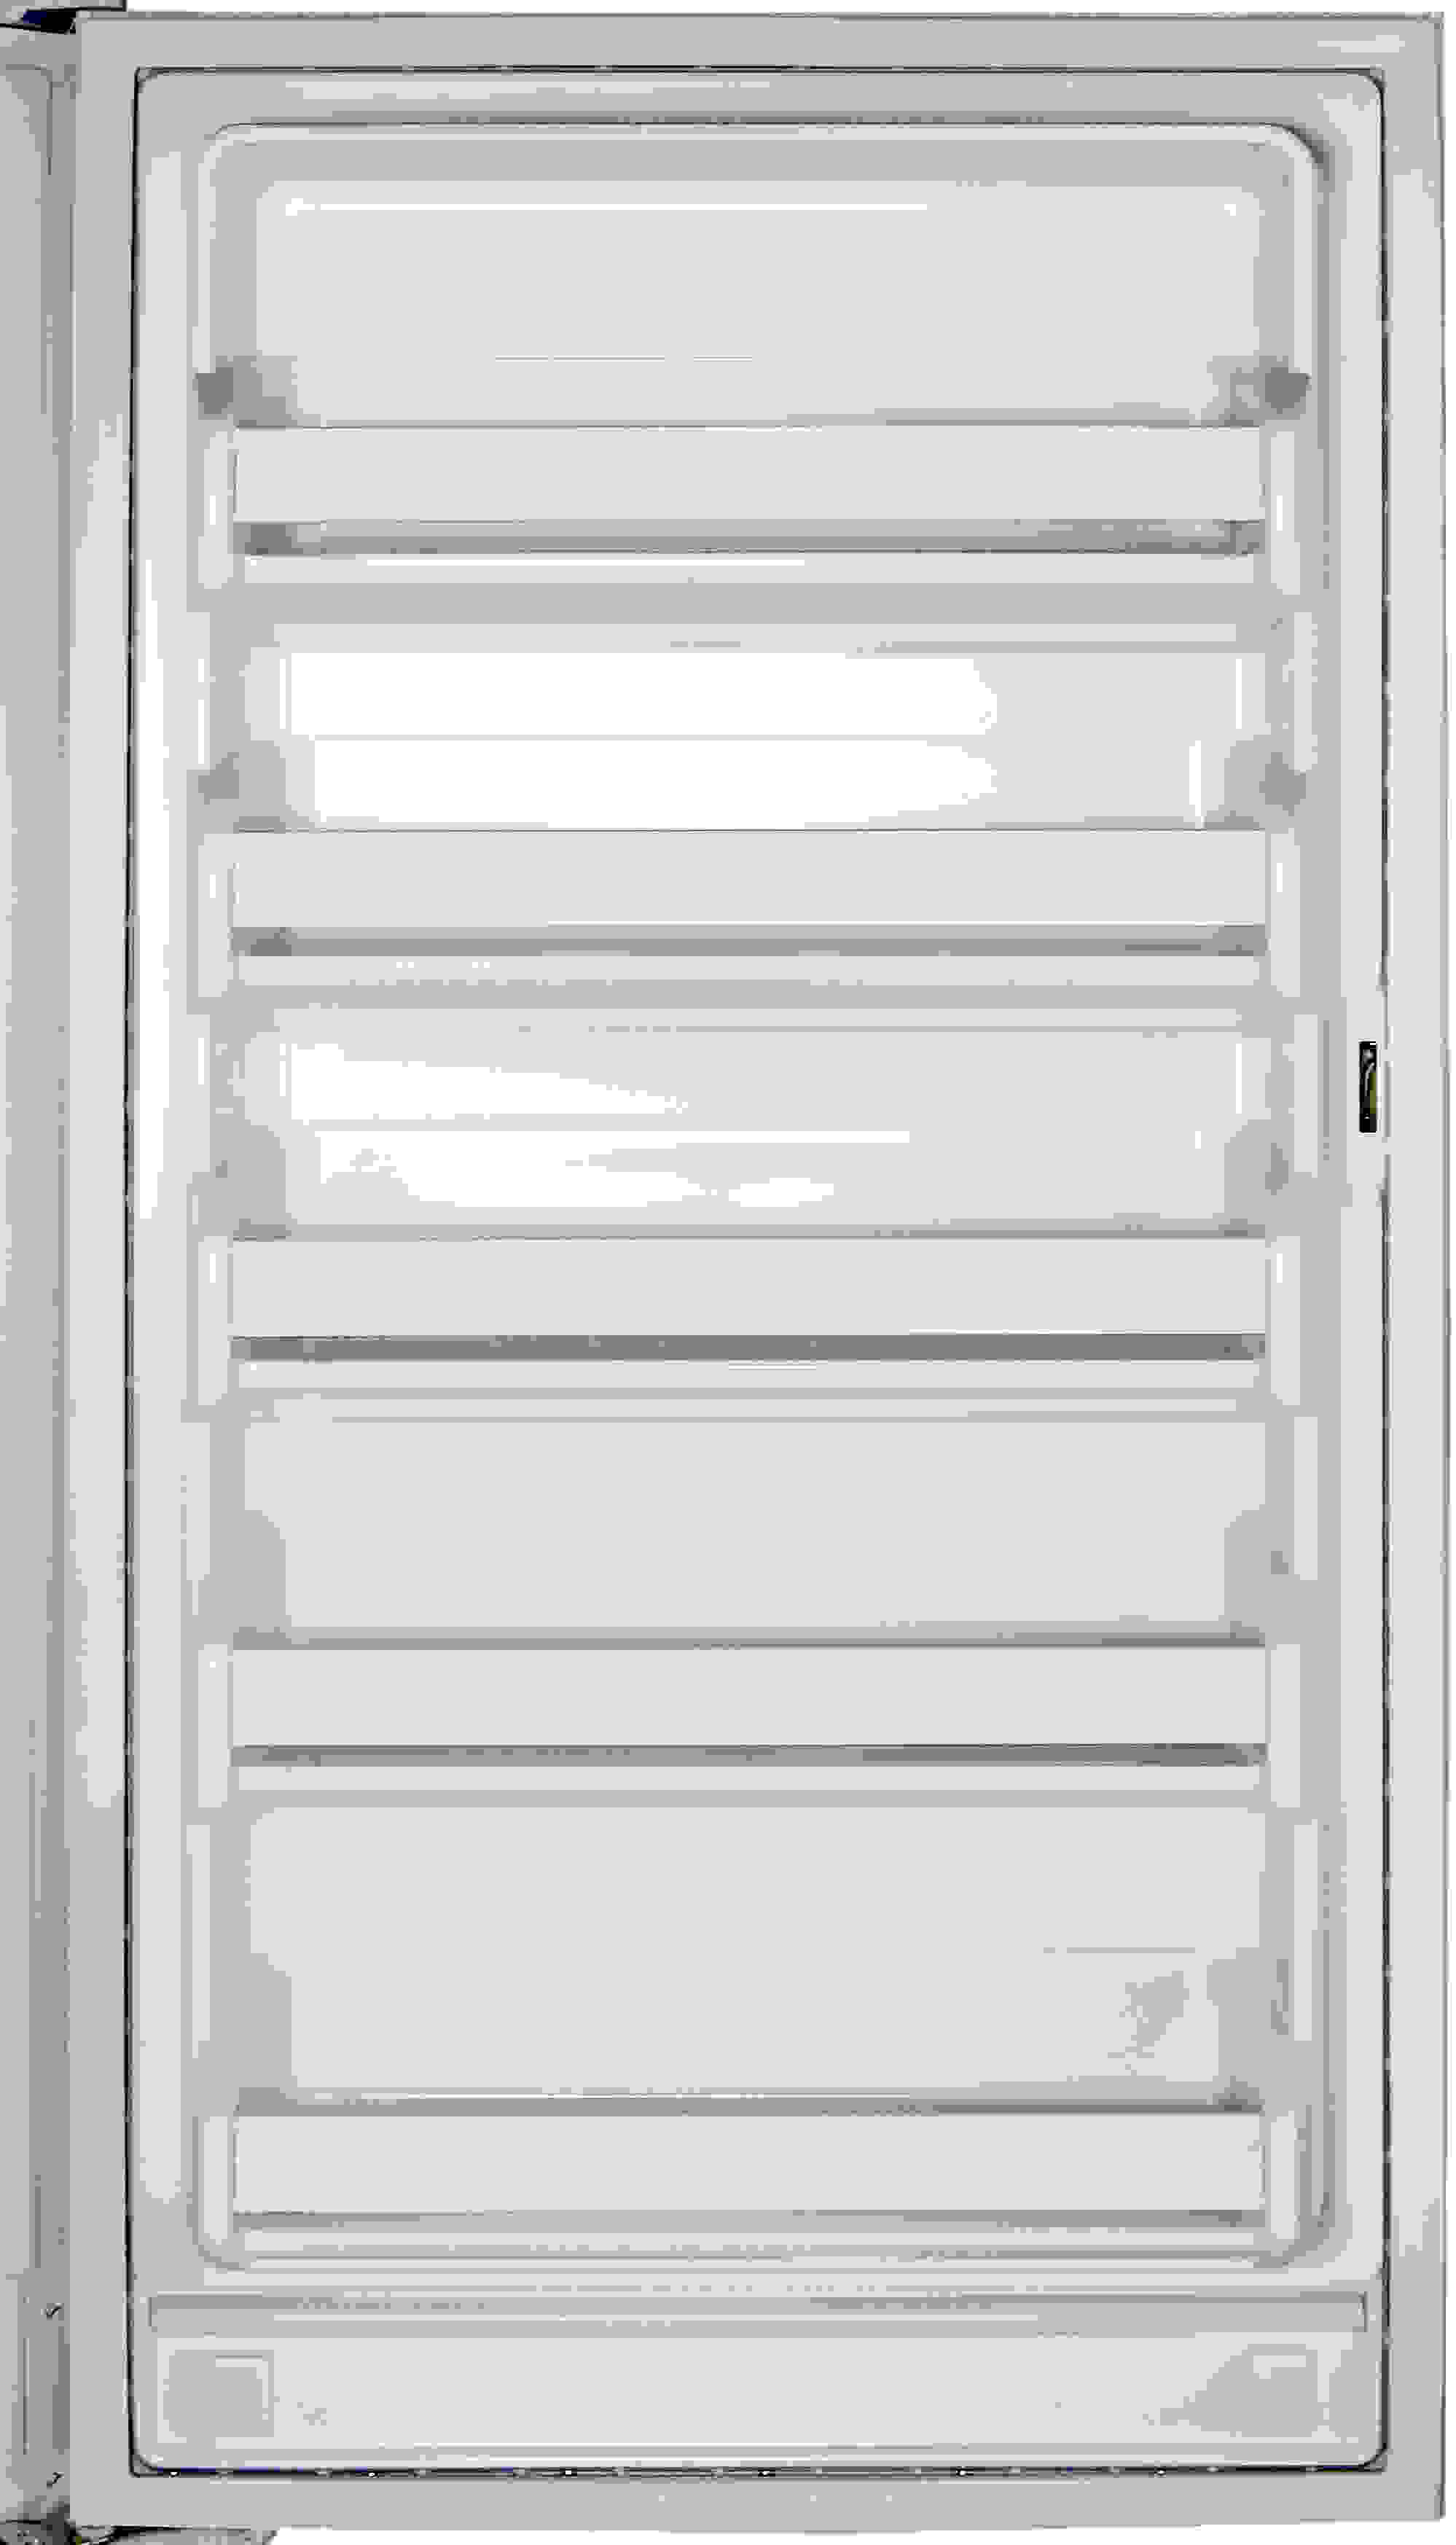 The typical five shelves are found on the GE FUF14SVRWW's door, none of which are adjustable.